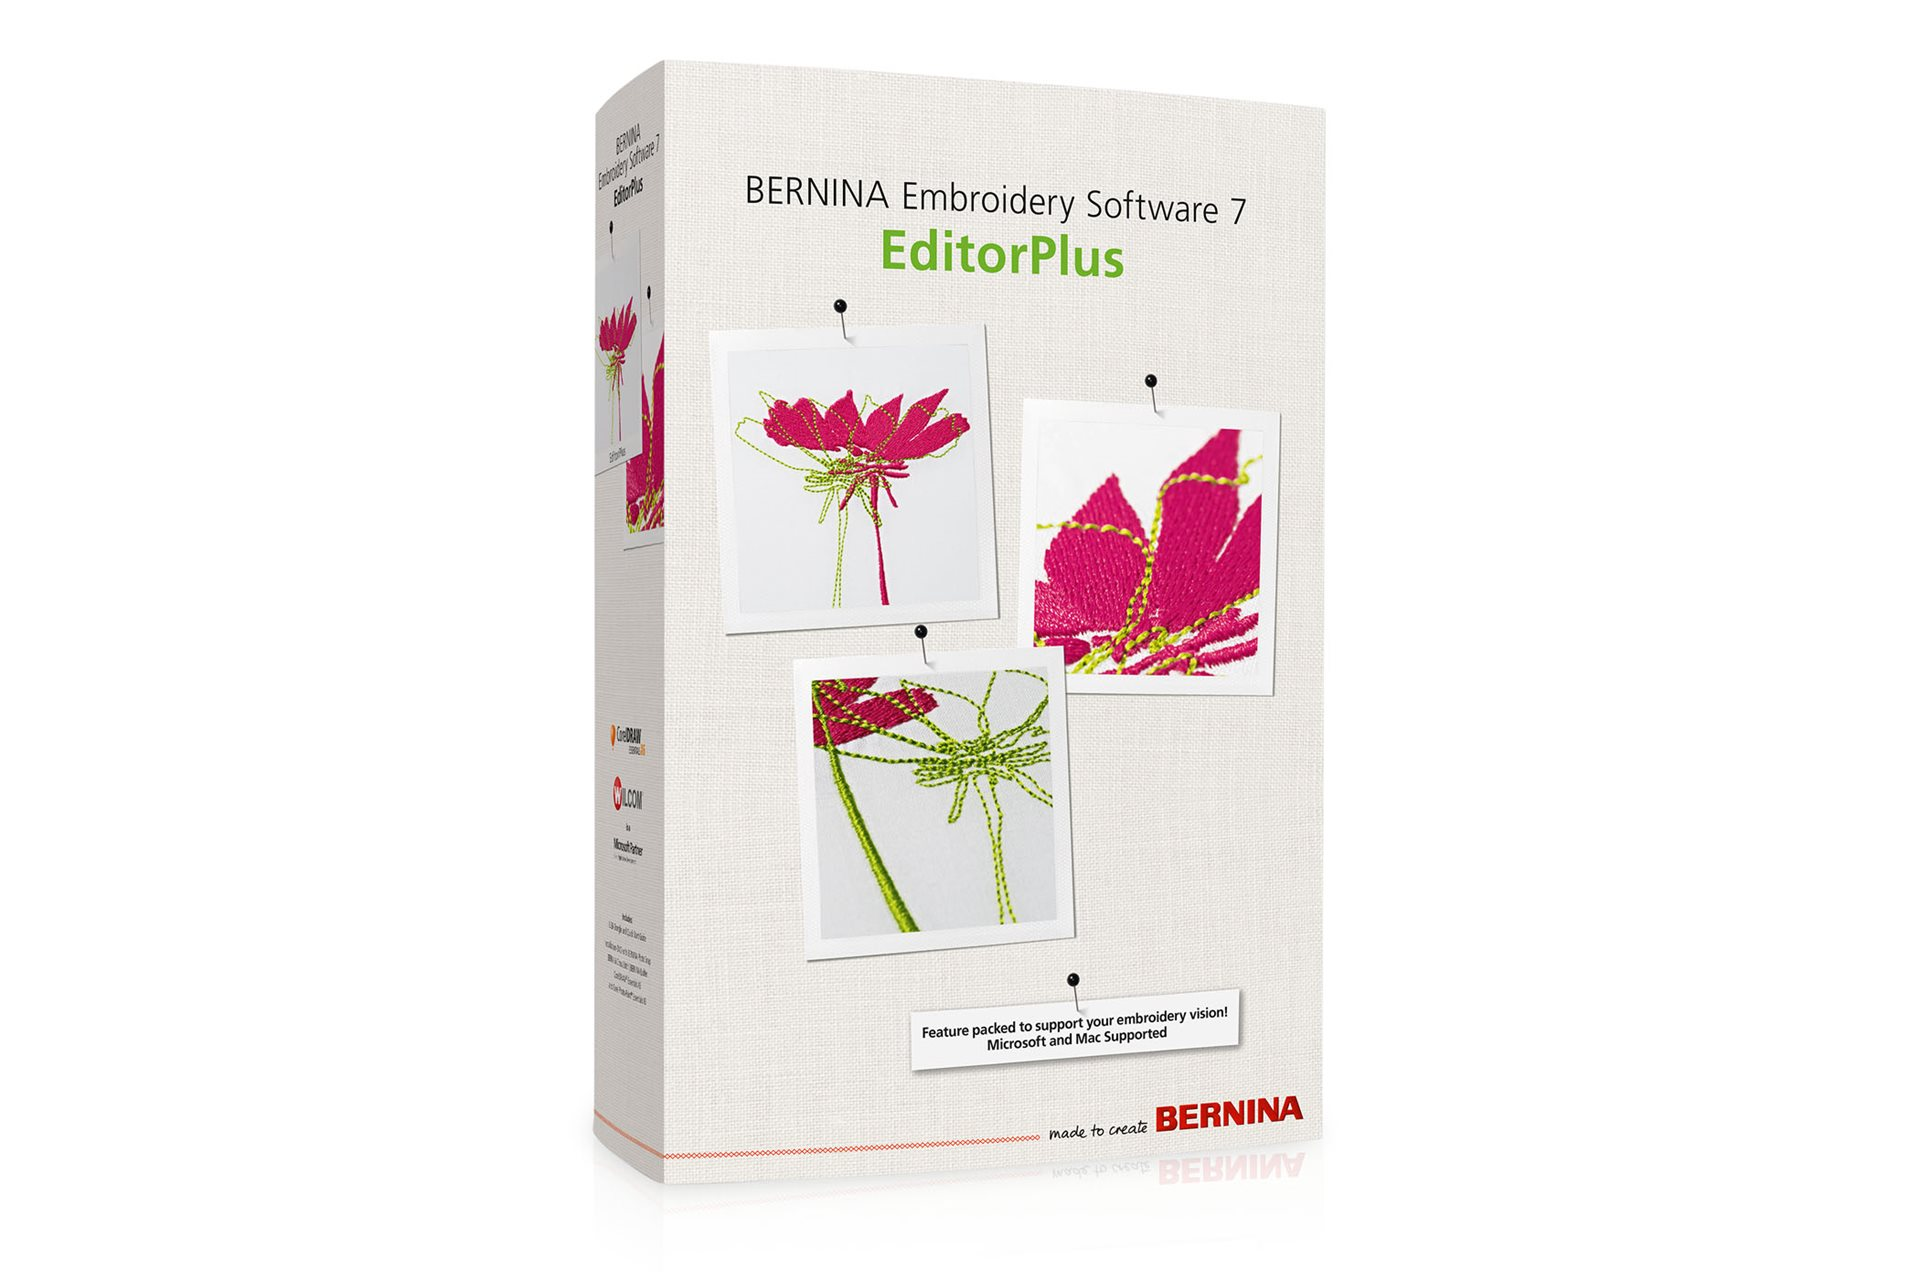 Embroidery Software 7 – EditorPlus